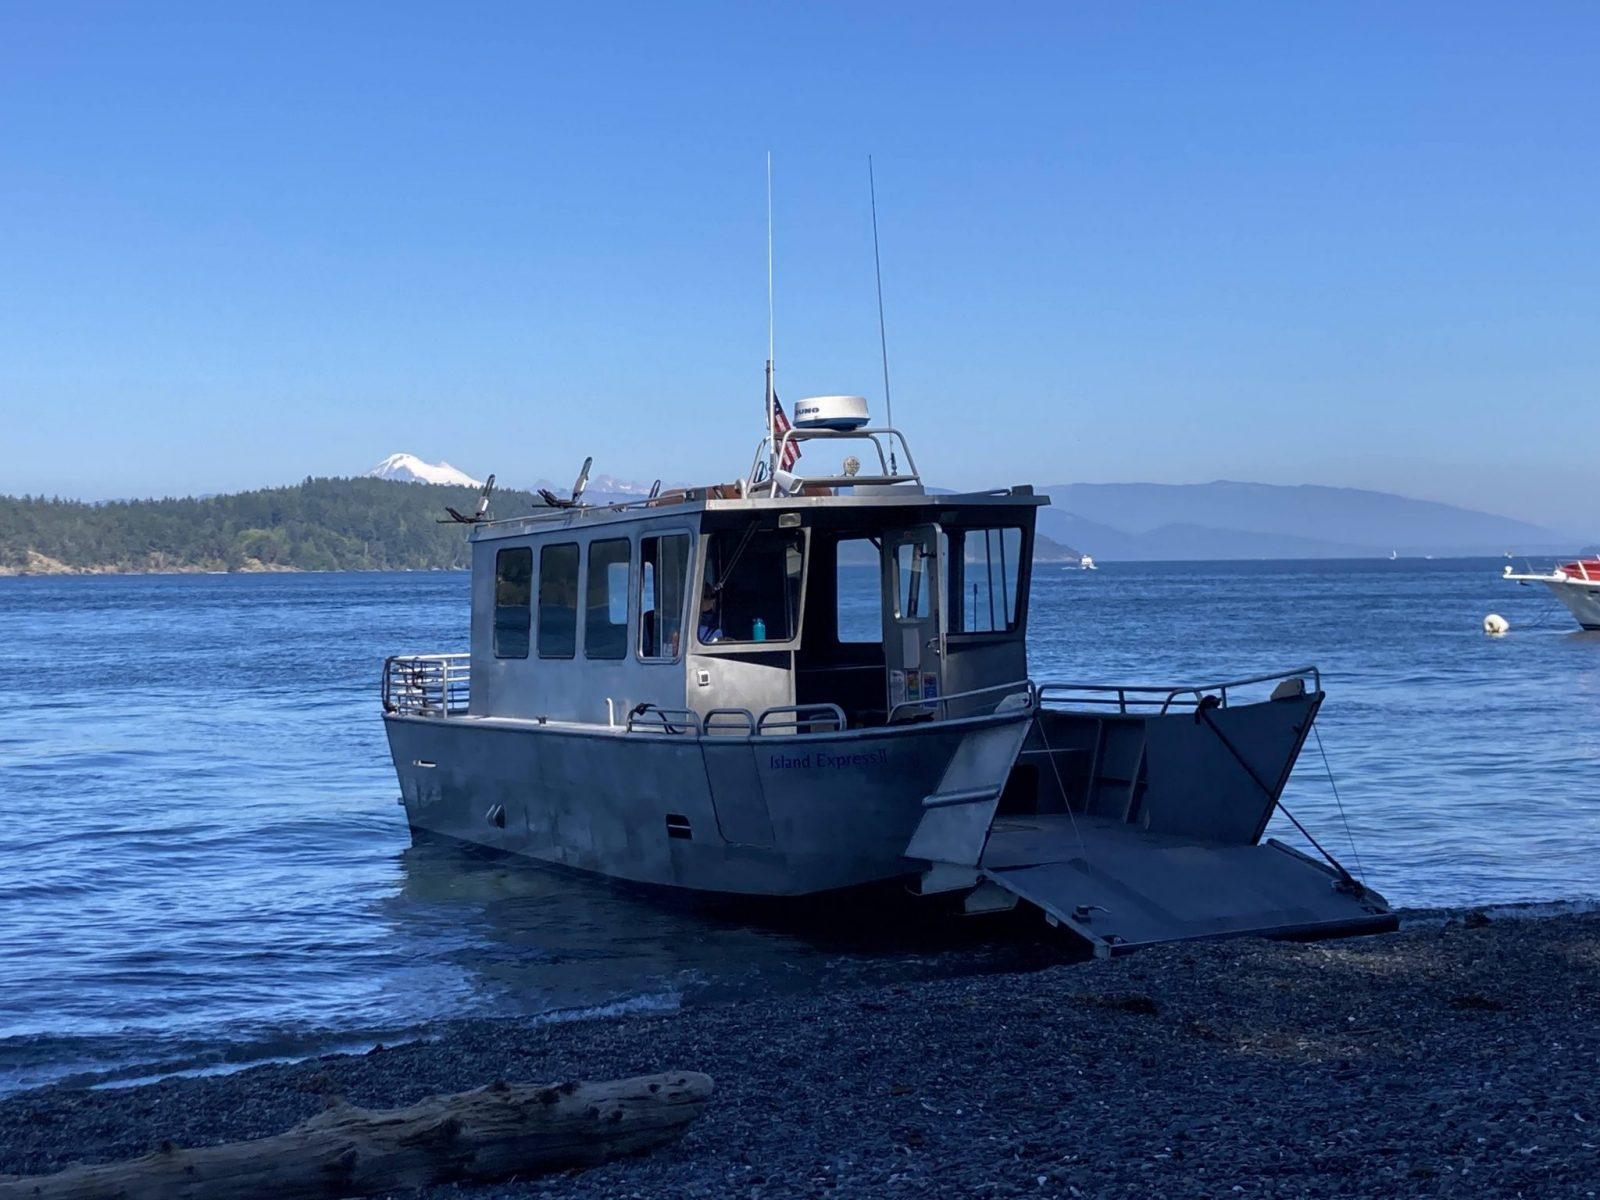 A metal charter boat is beached with it's ramp down to let hikers disembark. It's a gravel beach in the San Juan Islands with forested hillsides and a high mountain in the distance